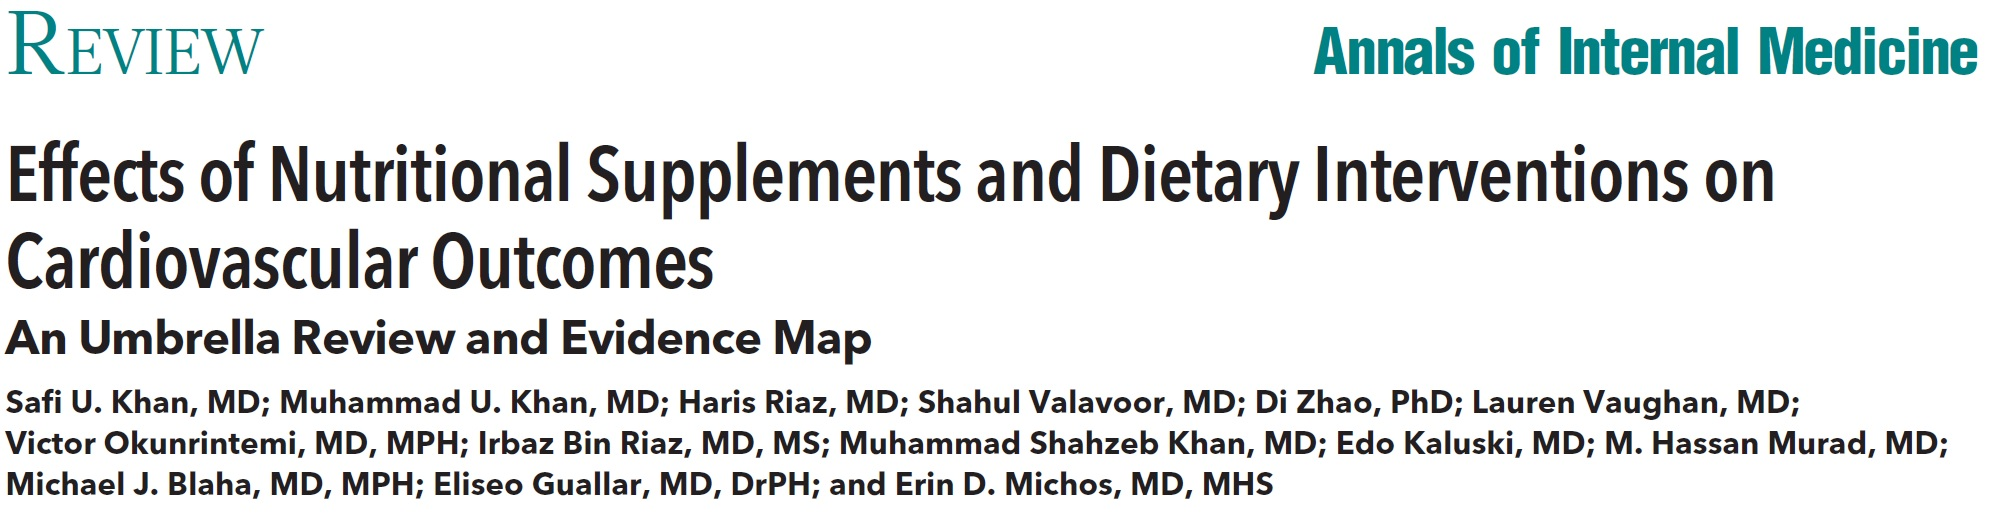 Effects of Nutritional Supplements and Dietary Interventions on Cardiovascular Outcomes